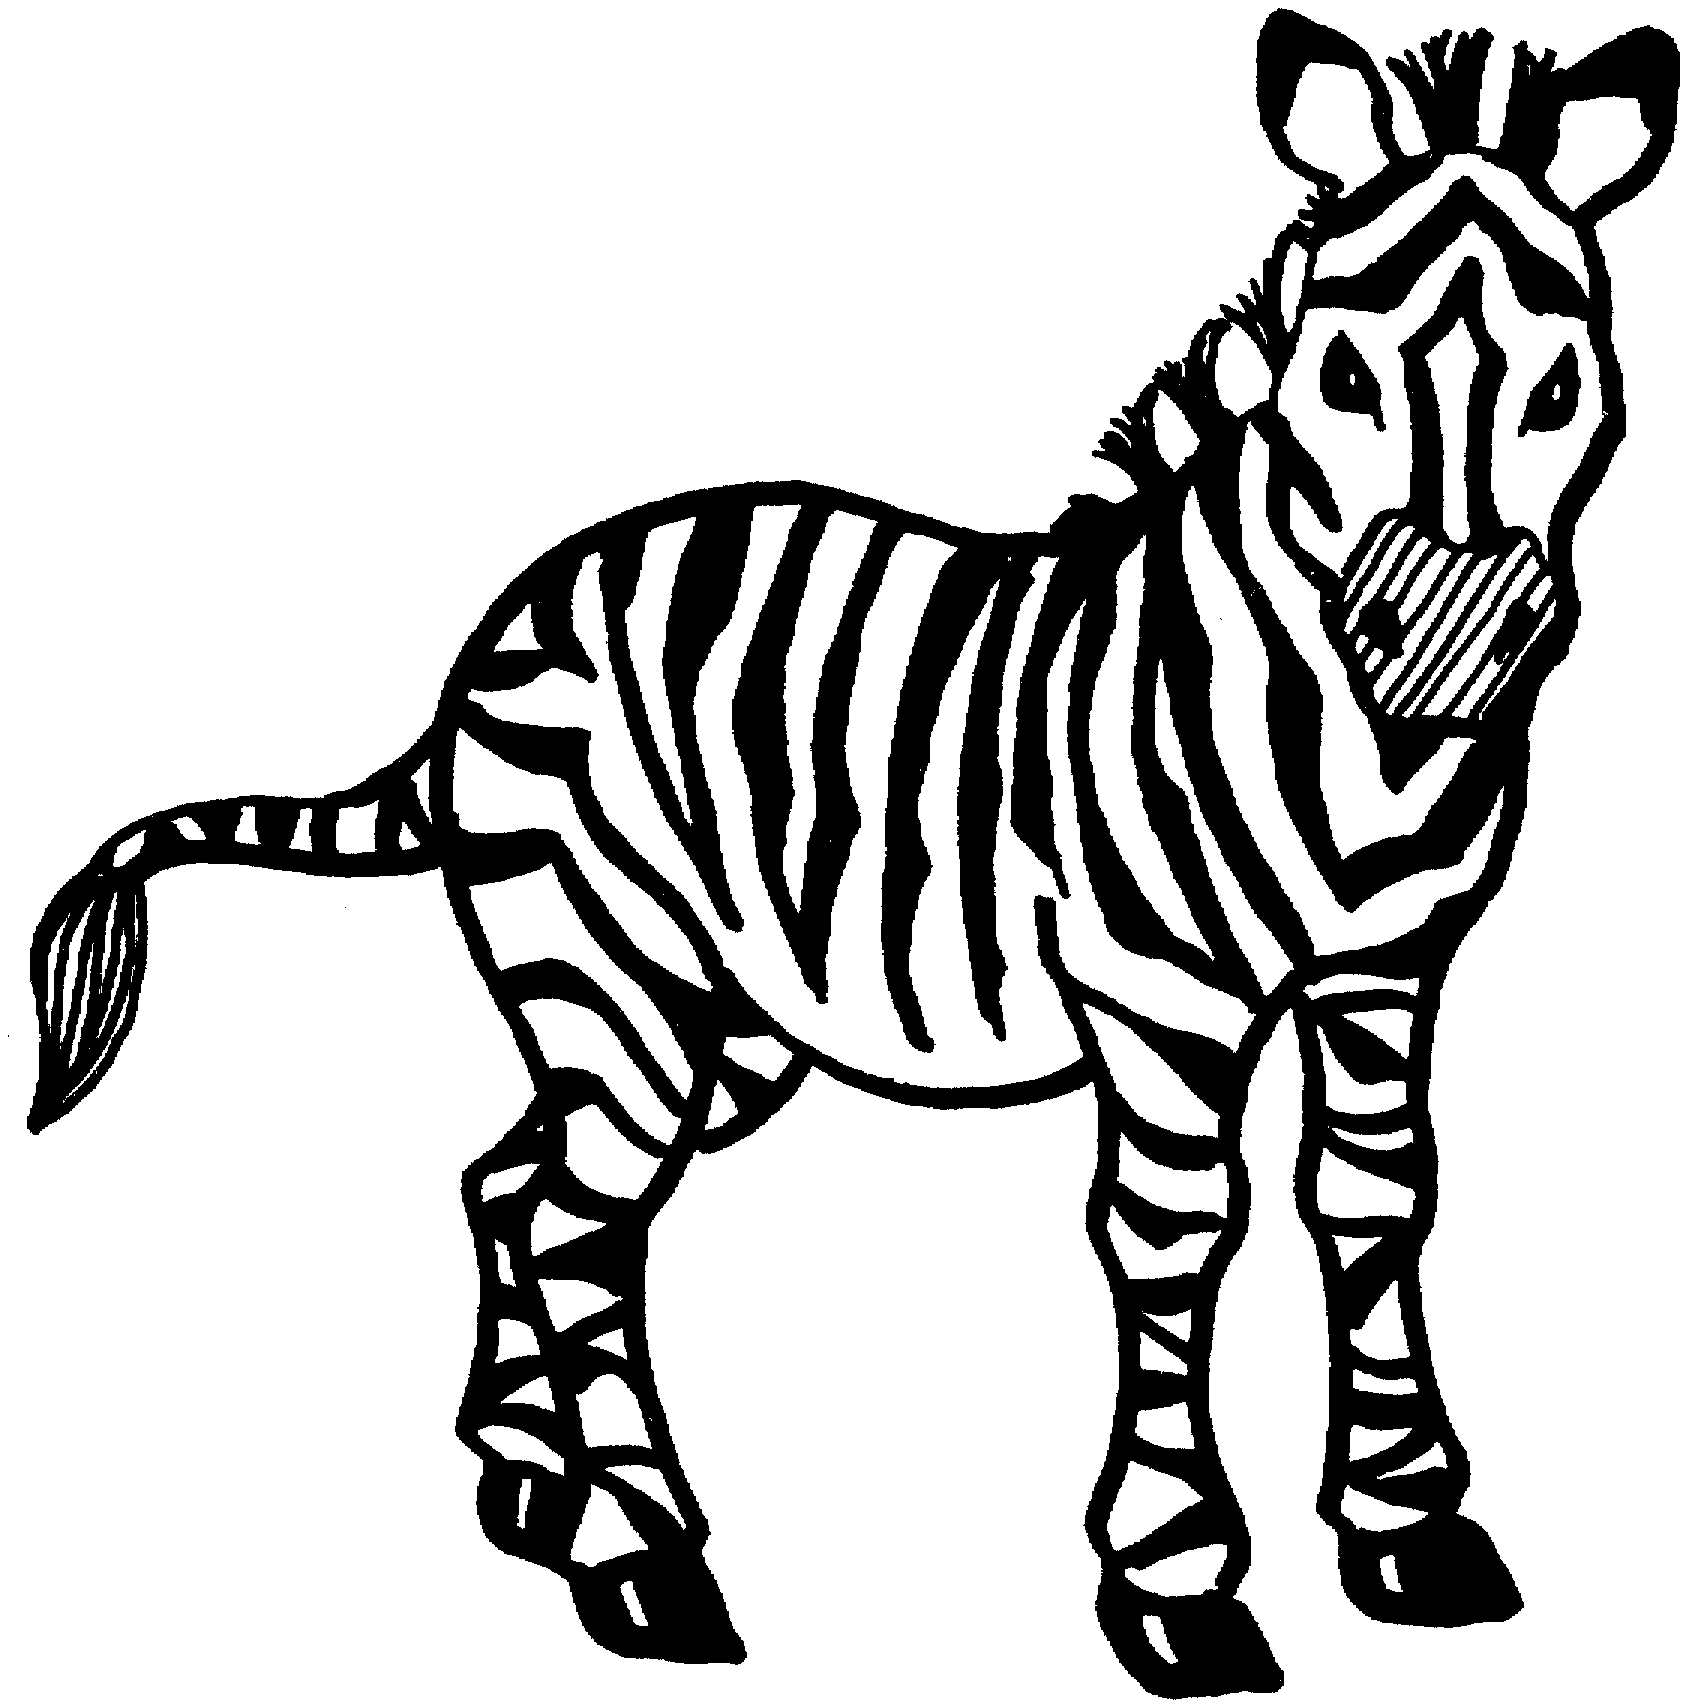 zebra coloring pages free printable zebra coloring pages free printable kids coloring pages coloring pages free zebra printable